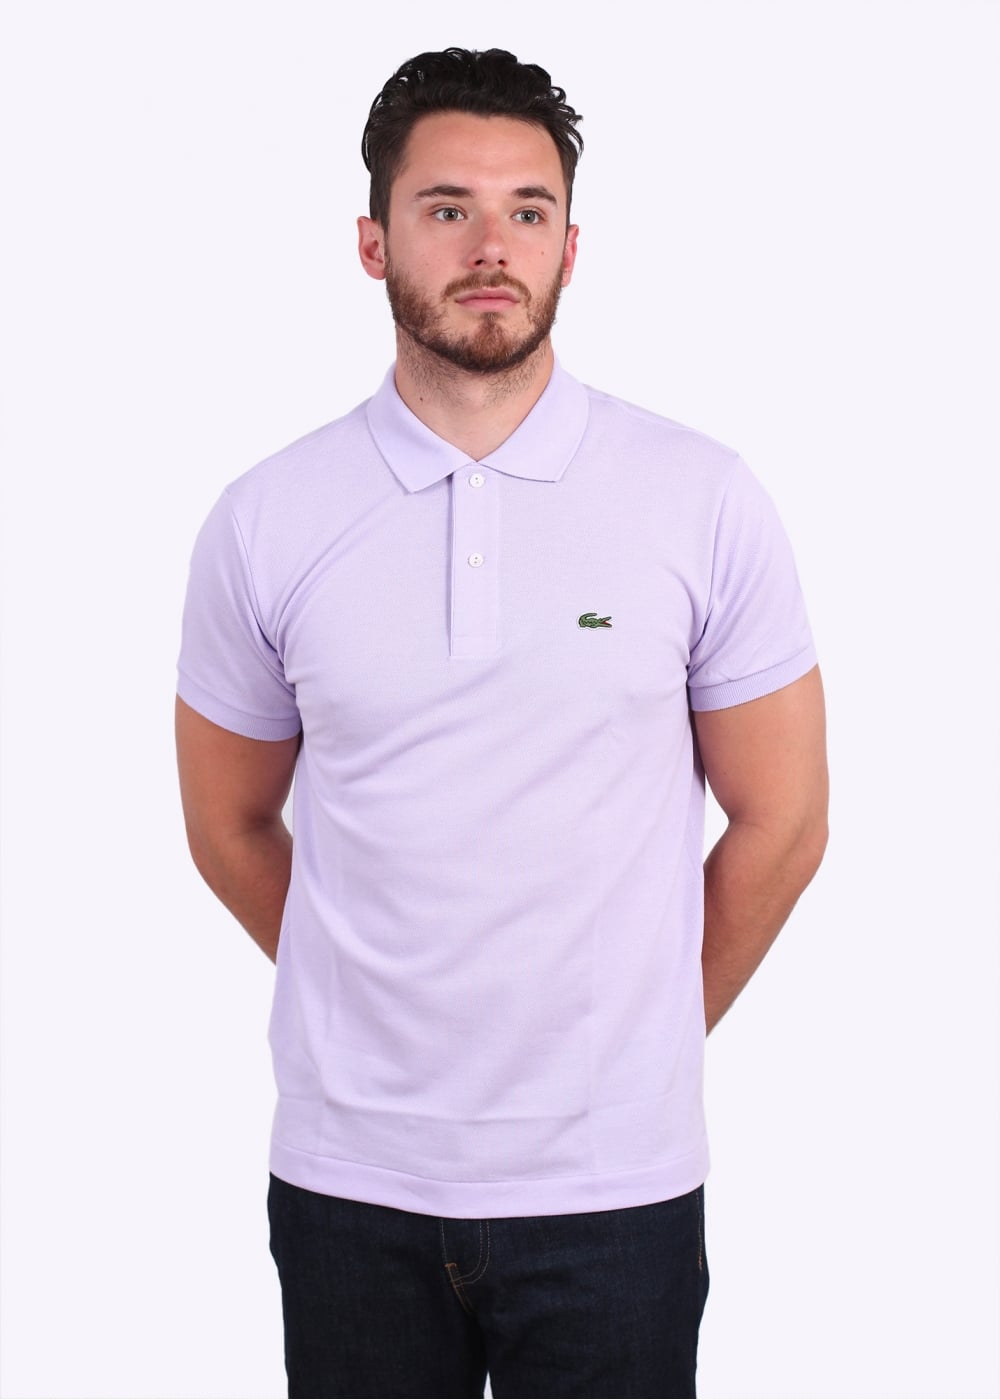 c7c2e95780 Lacoste SS Best Polo Shirt - Iris - Polo Shirts from Triads UK